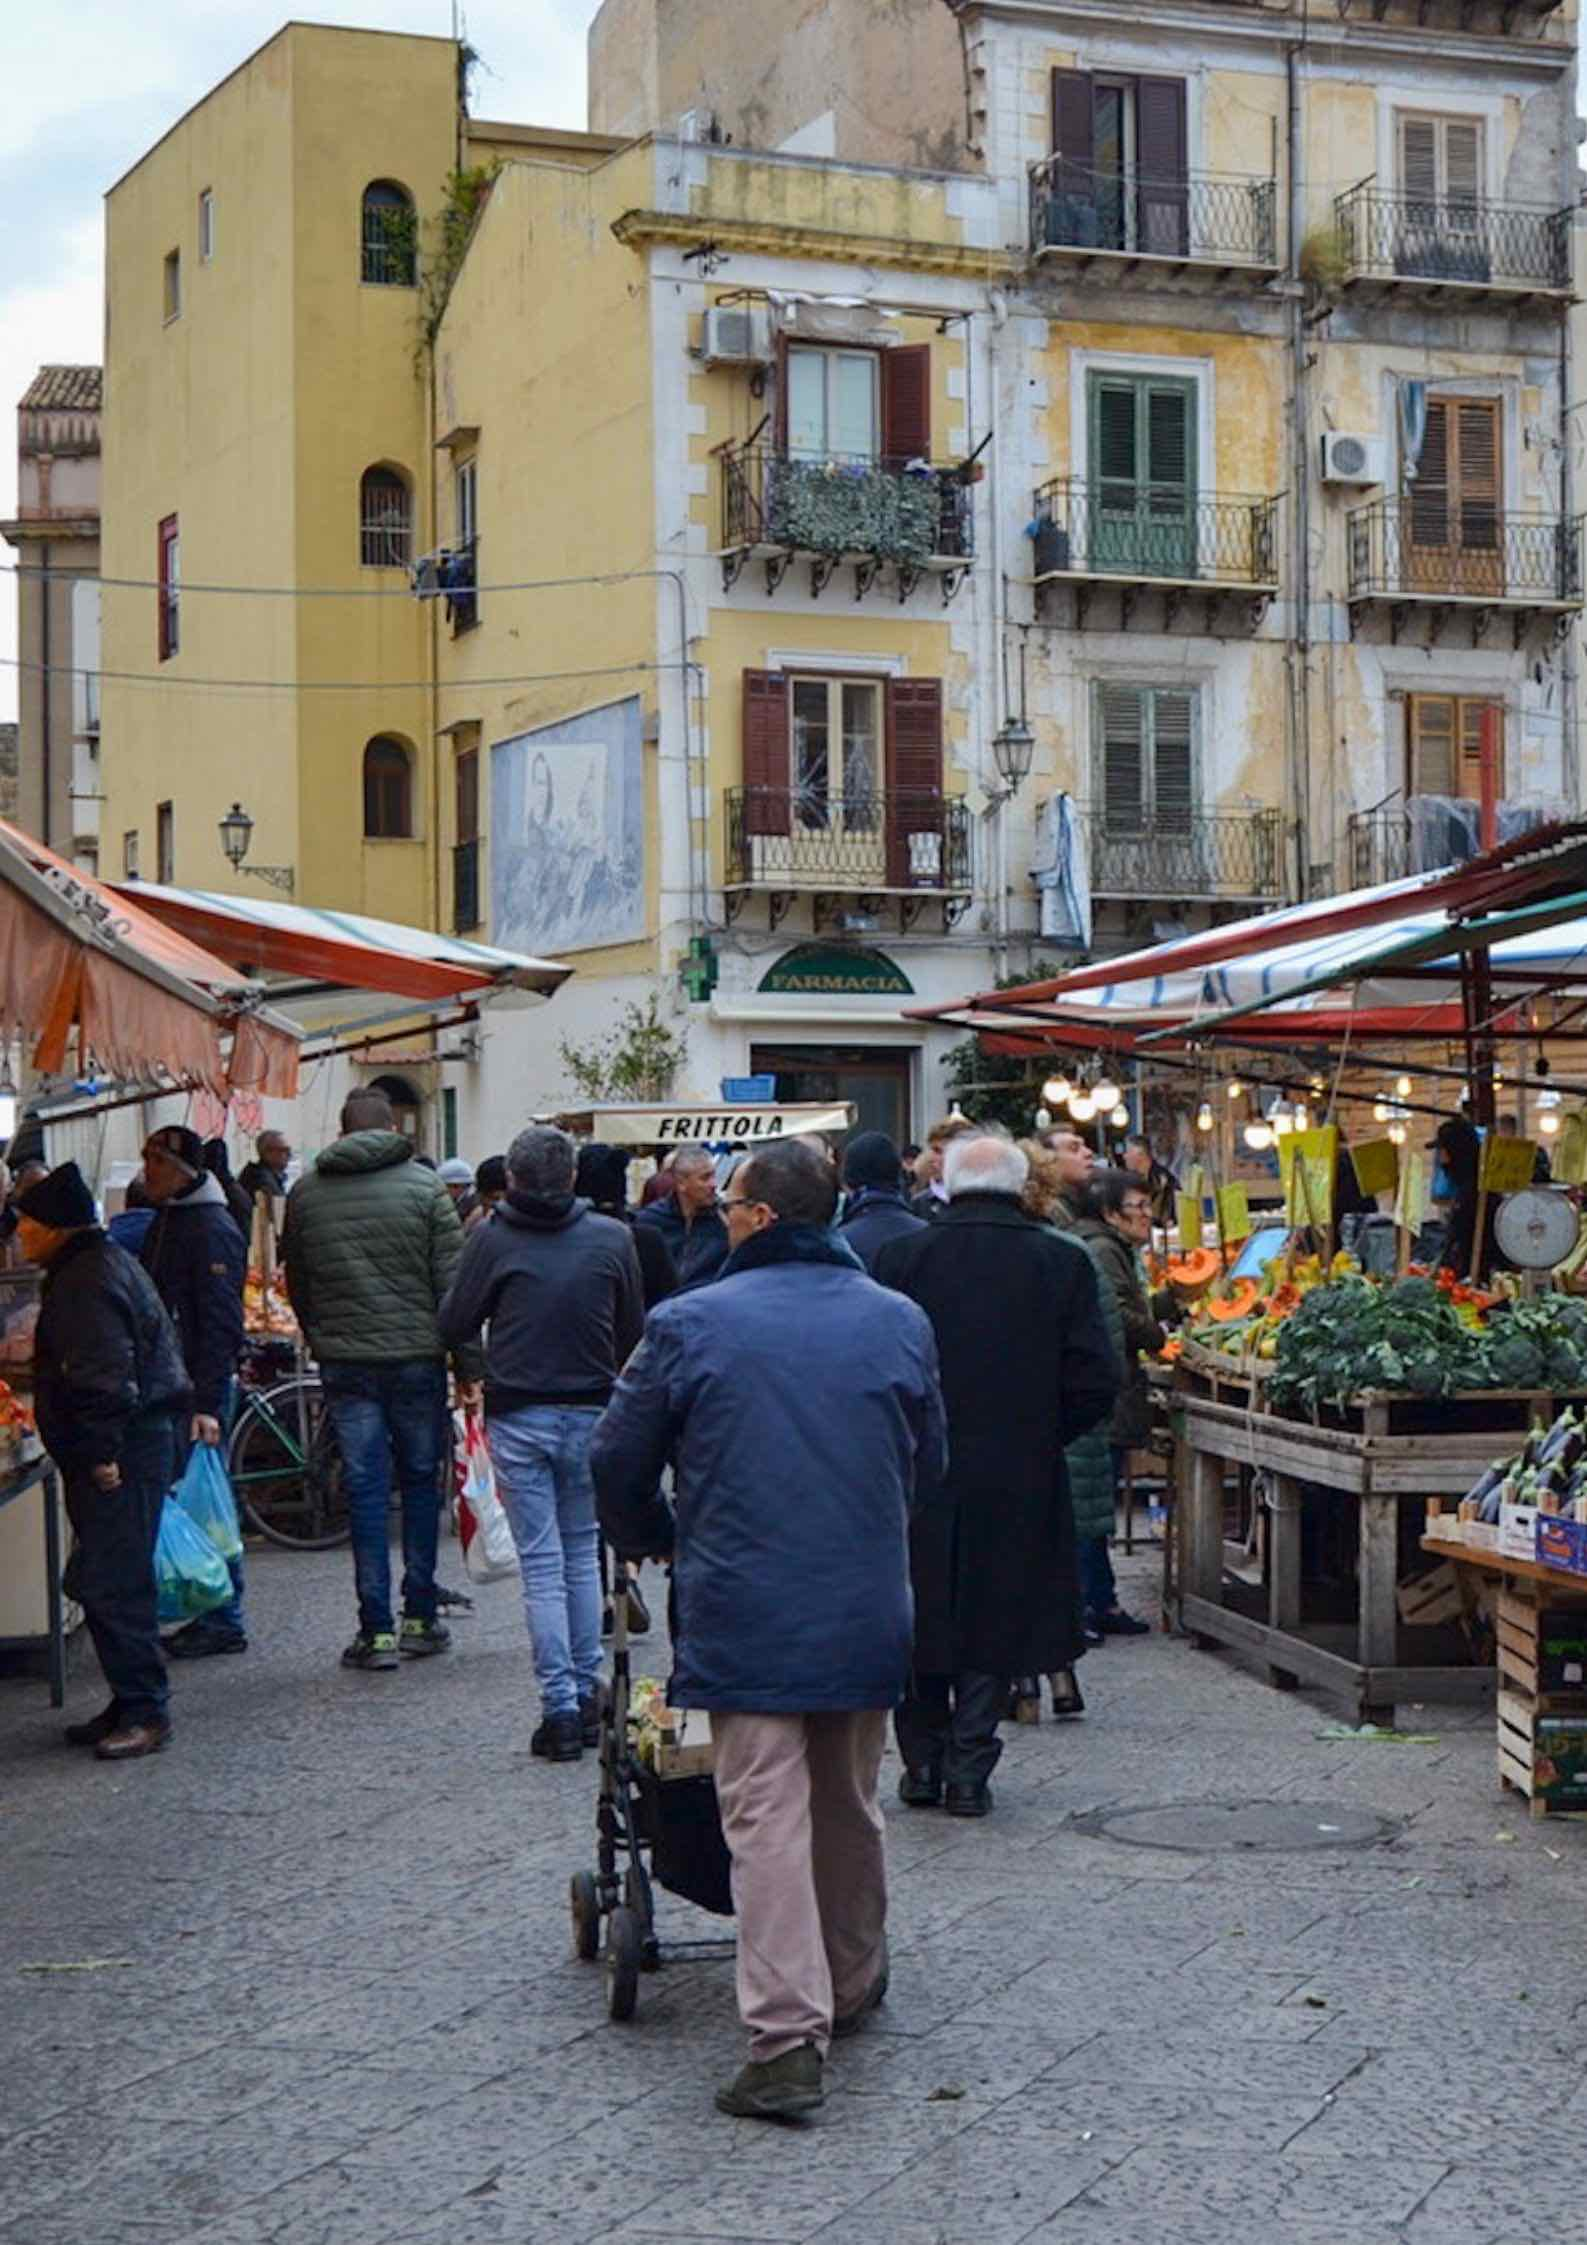 A colorful street market in Palermo